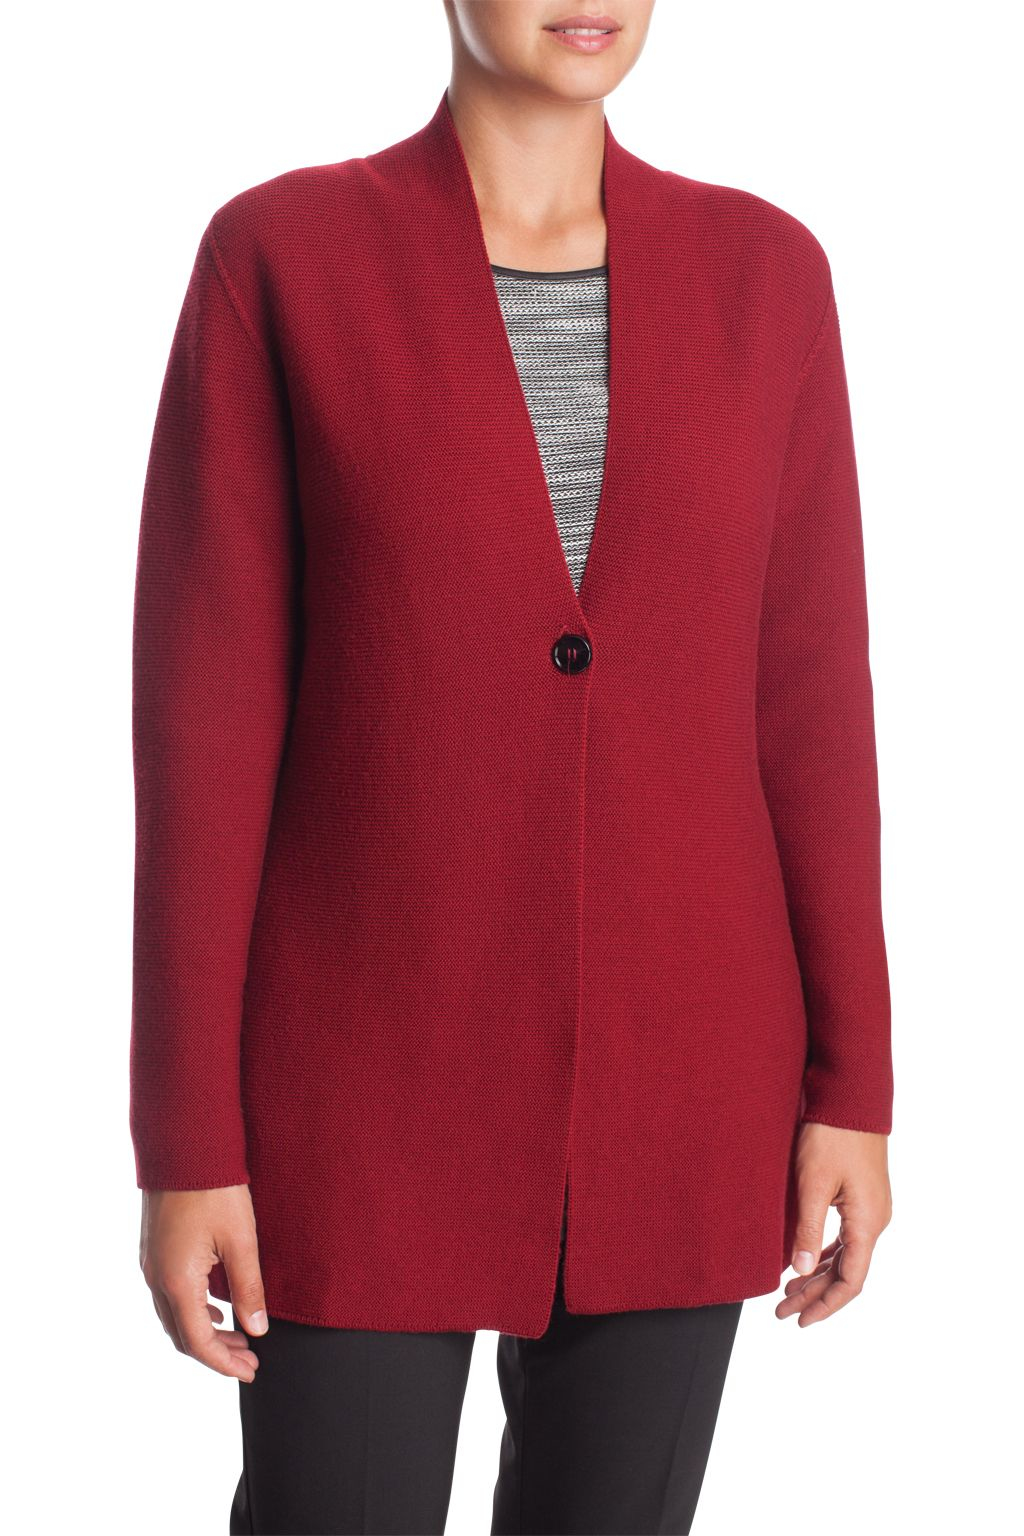 Elena miro Long Cardigan 100% Wool in Red | Lyst